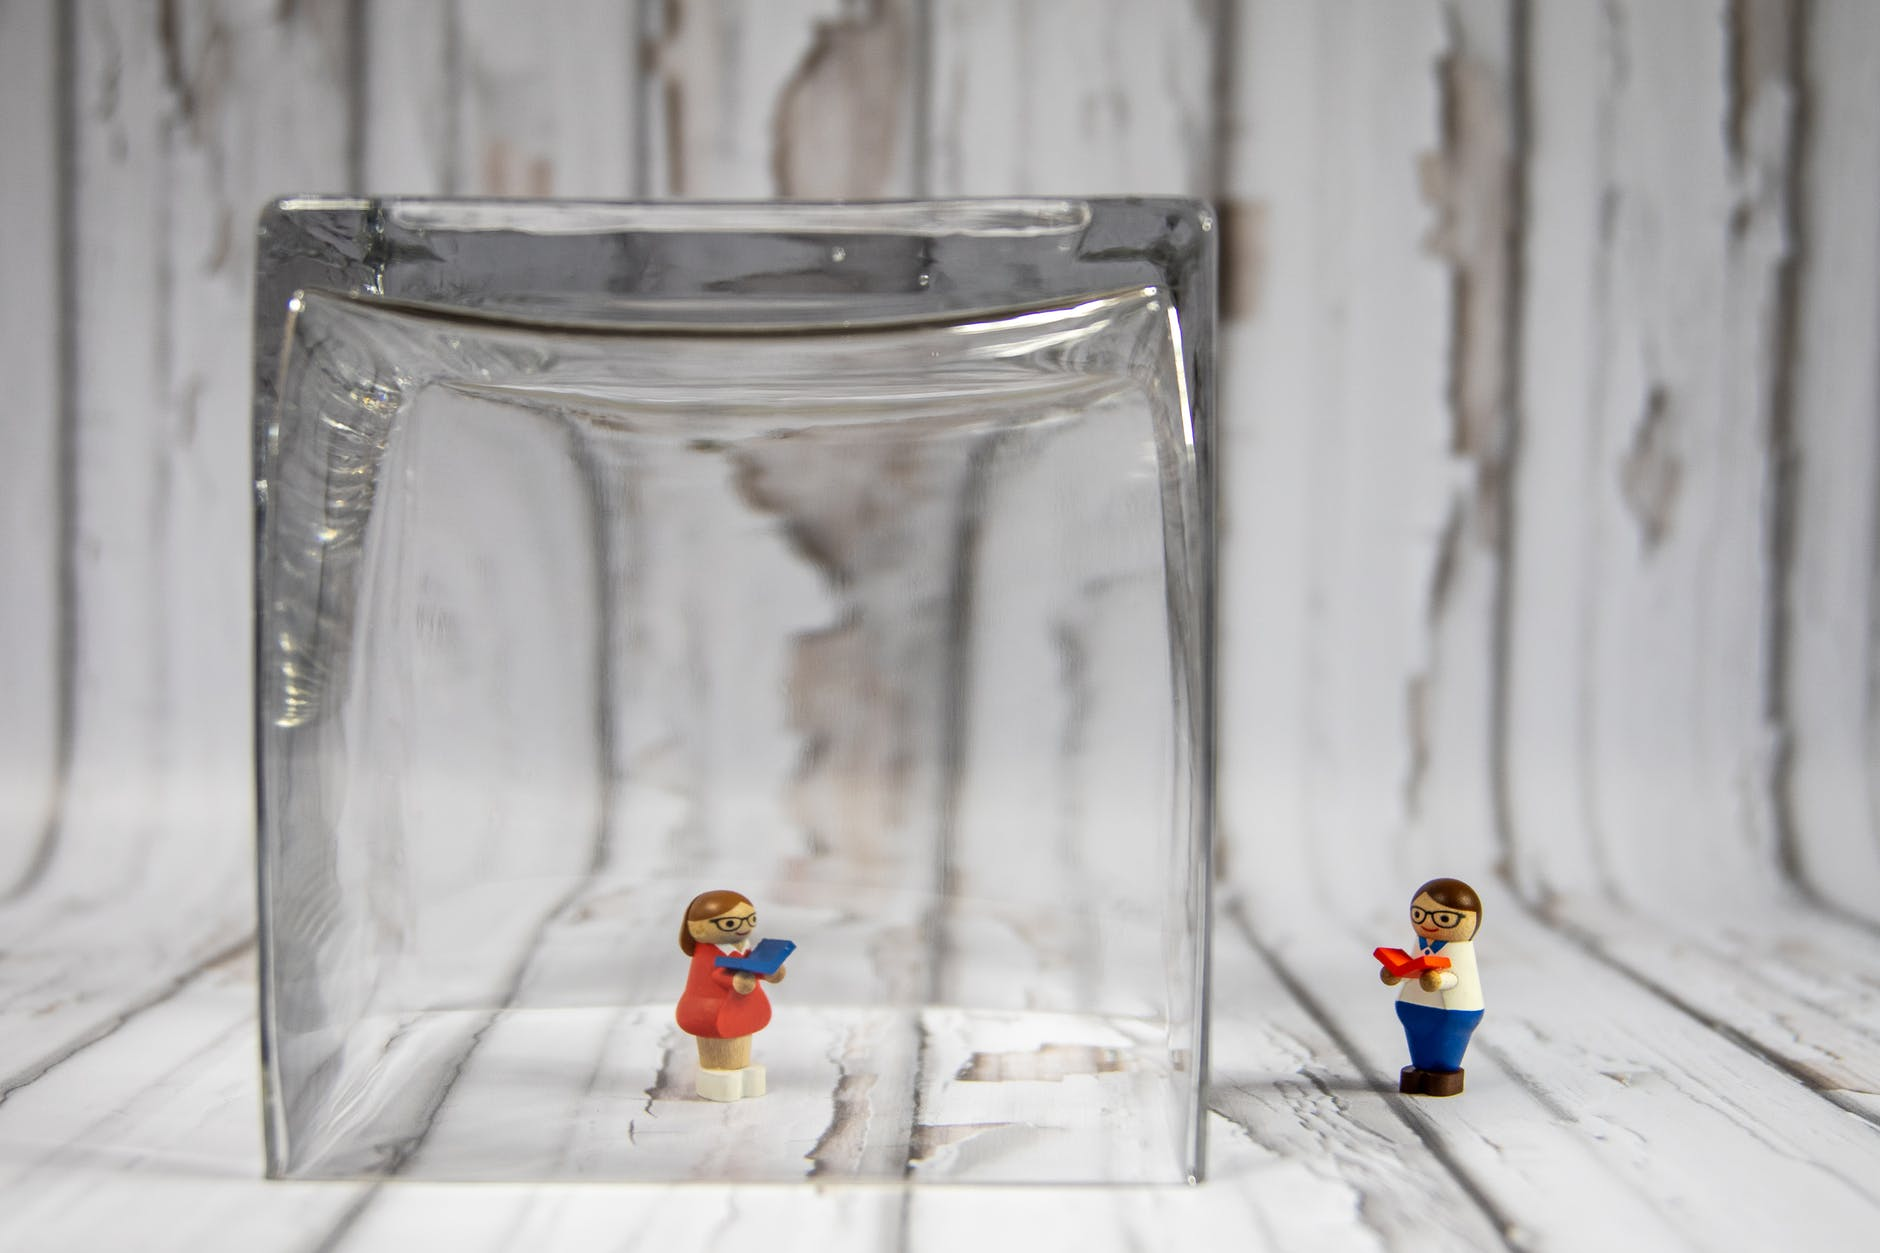 lego toy in clear glass container